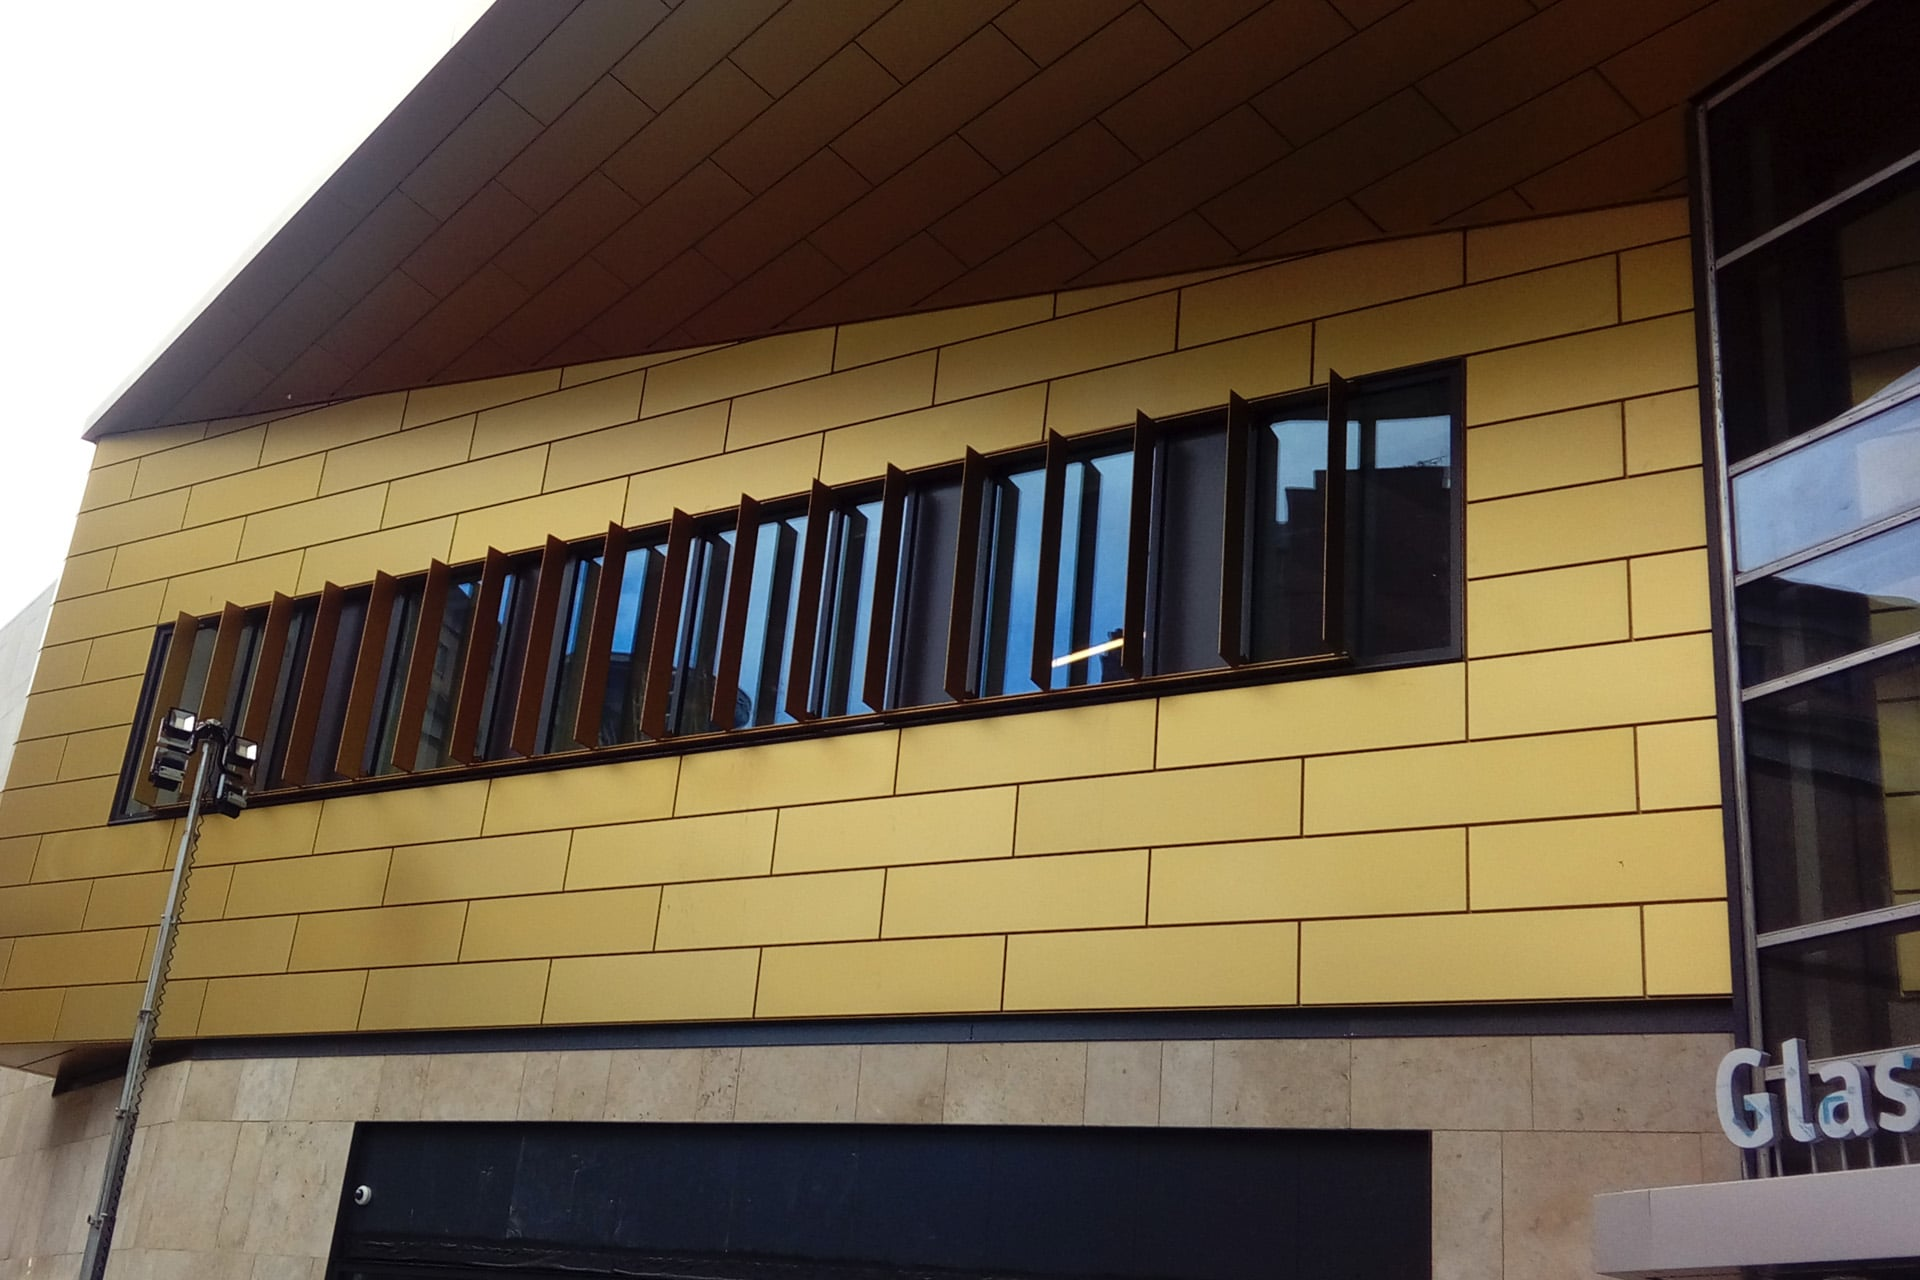 Anodised rainscreen cladding panels Glasgow Queen Street station